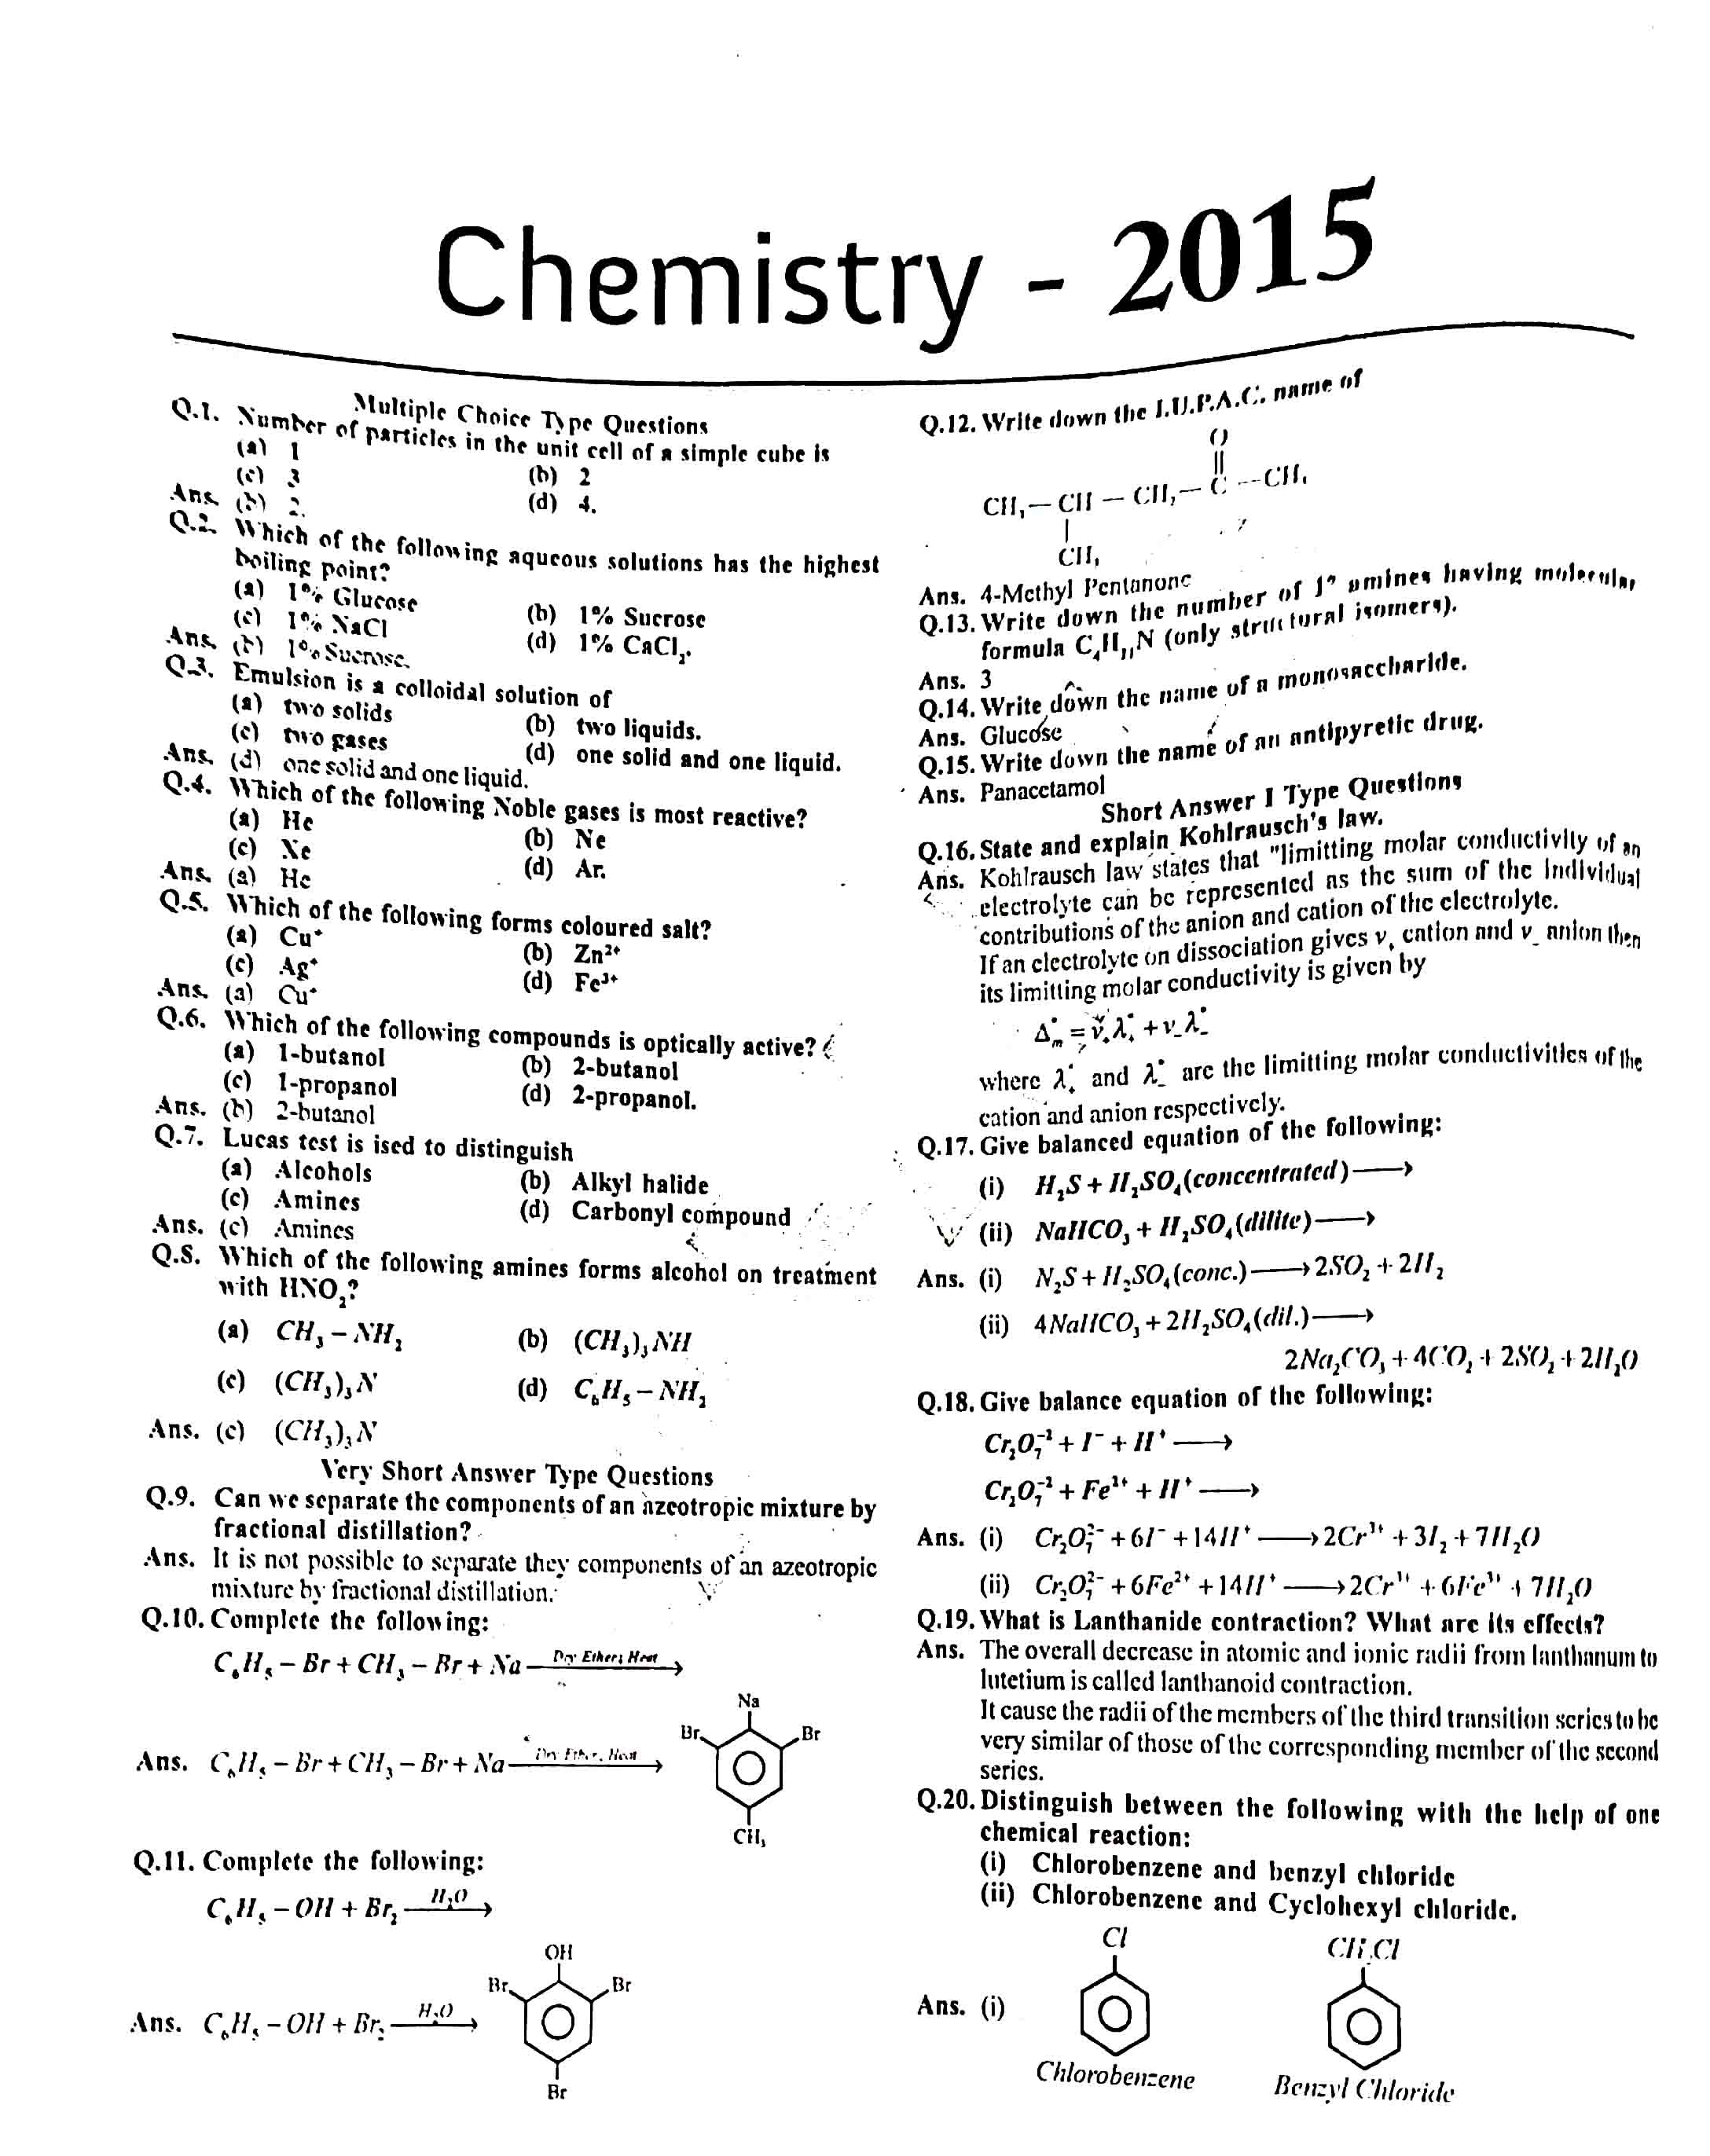 JAC Class 12 chemistry 2015 Question Paper 01